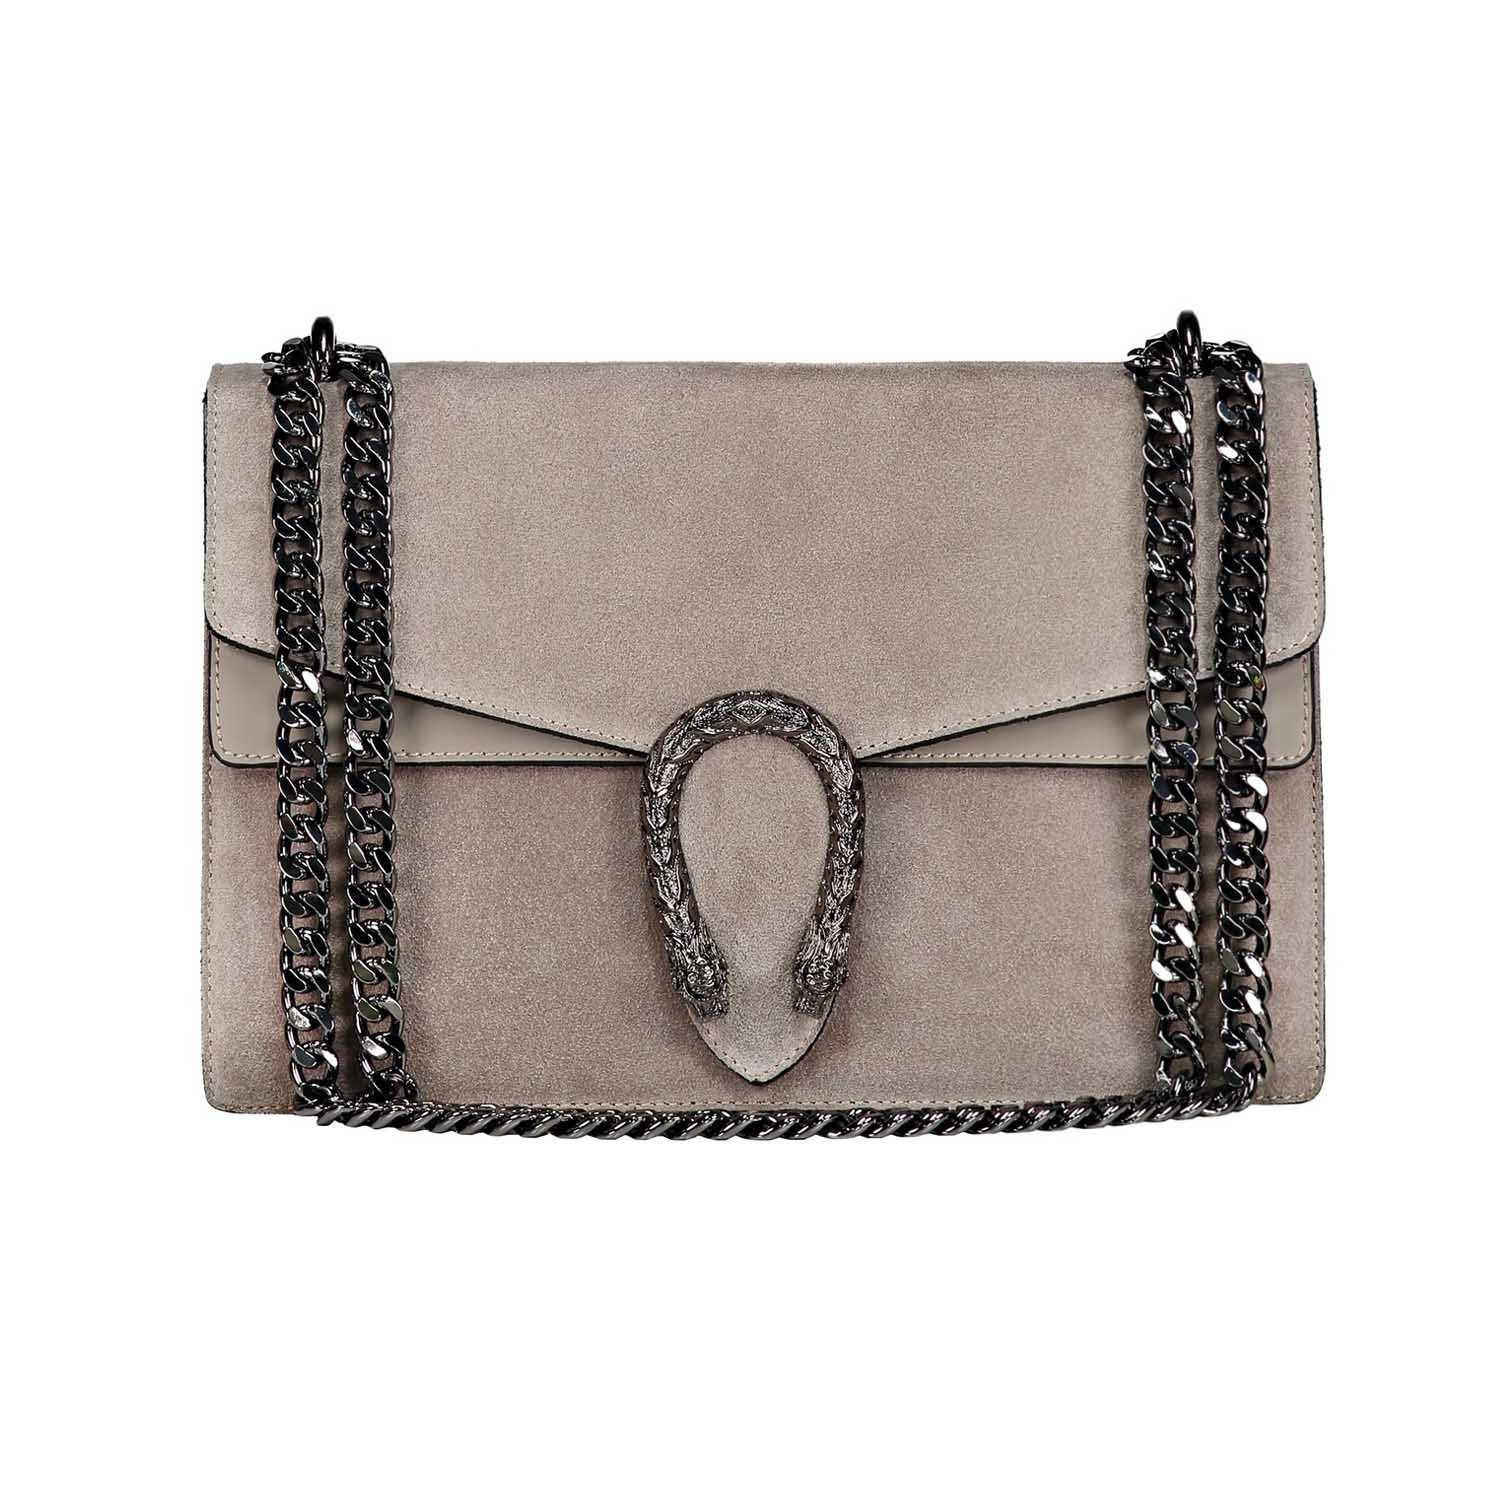 Italian cross body chain bag, designer evening purse, shoulder bag, handbag, flap bag, suede genuine leather (Medium, Grey taupe)